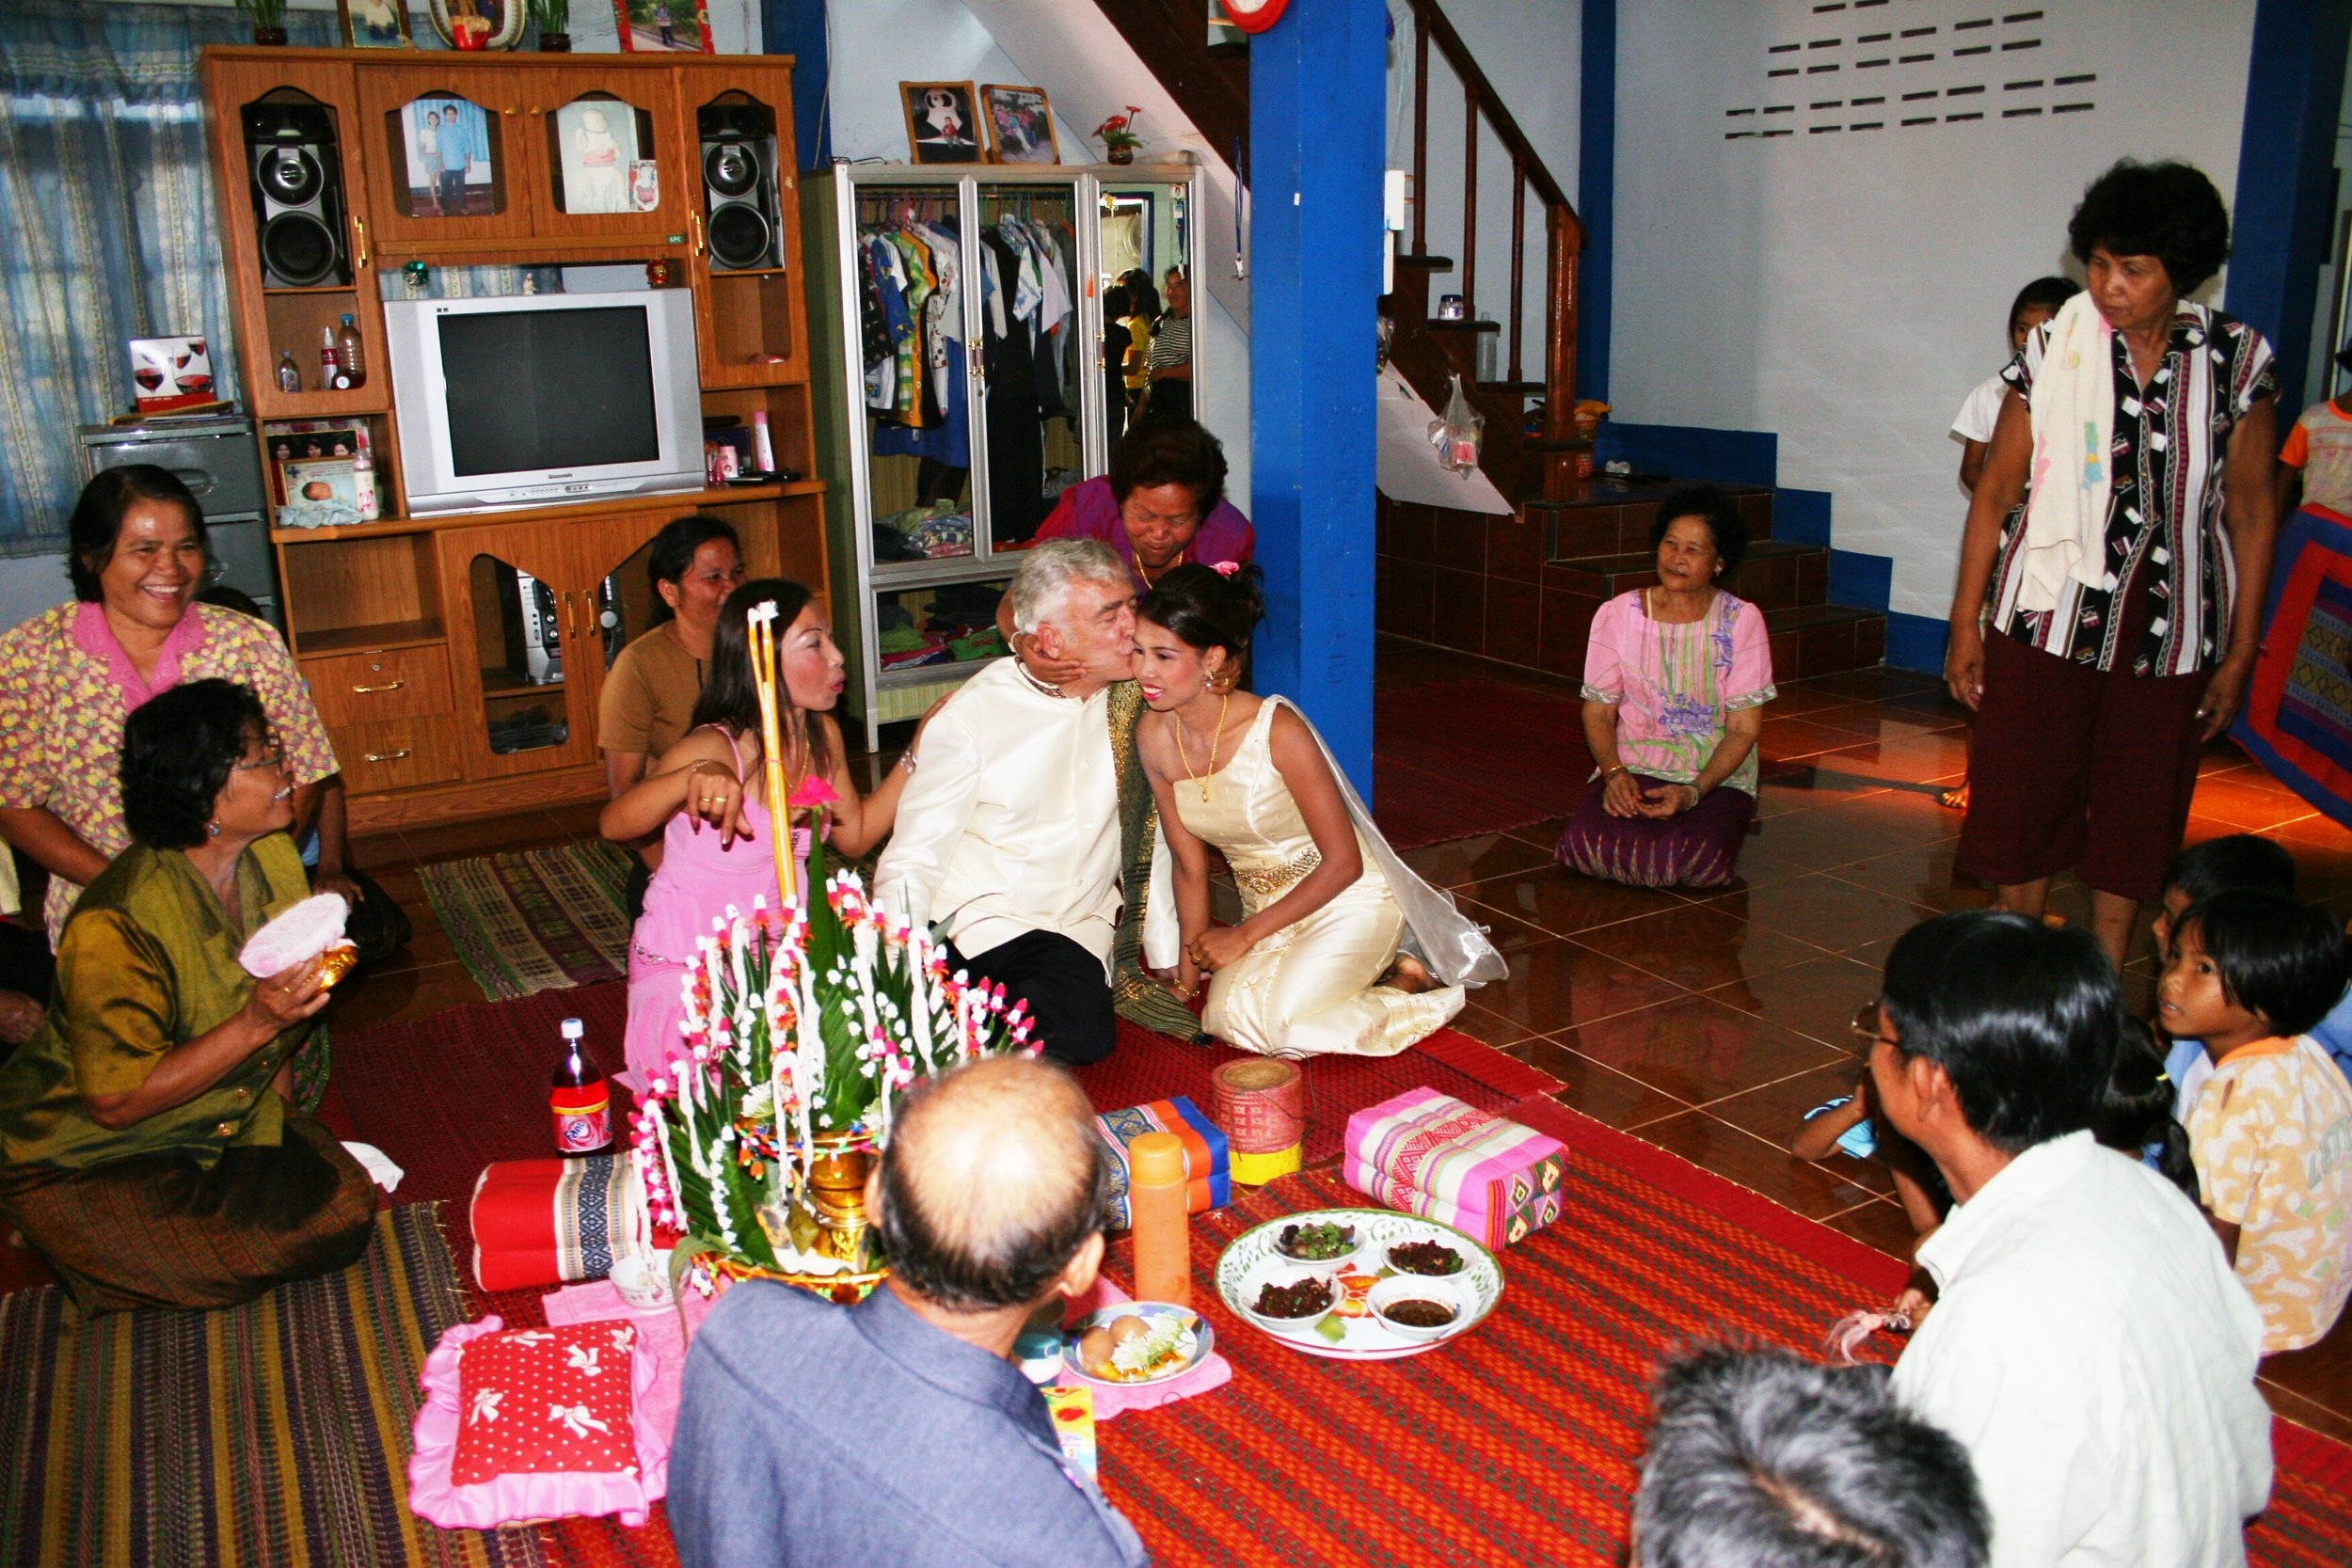 The groom kisses the bride of course.  This may be another western custom as kissing in public is frowned upon in Thailand